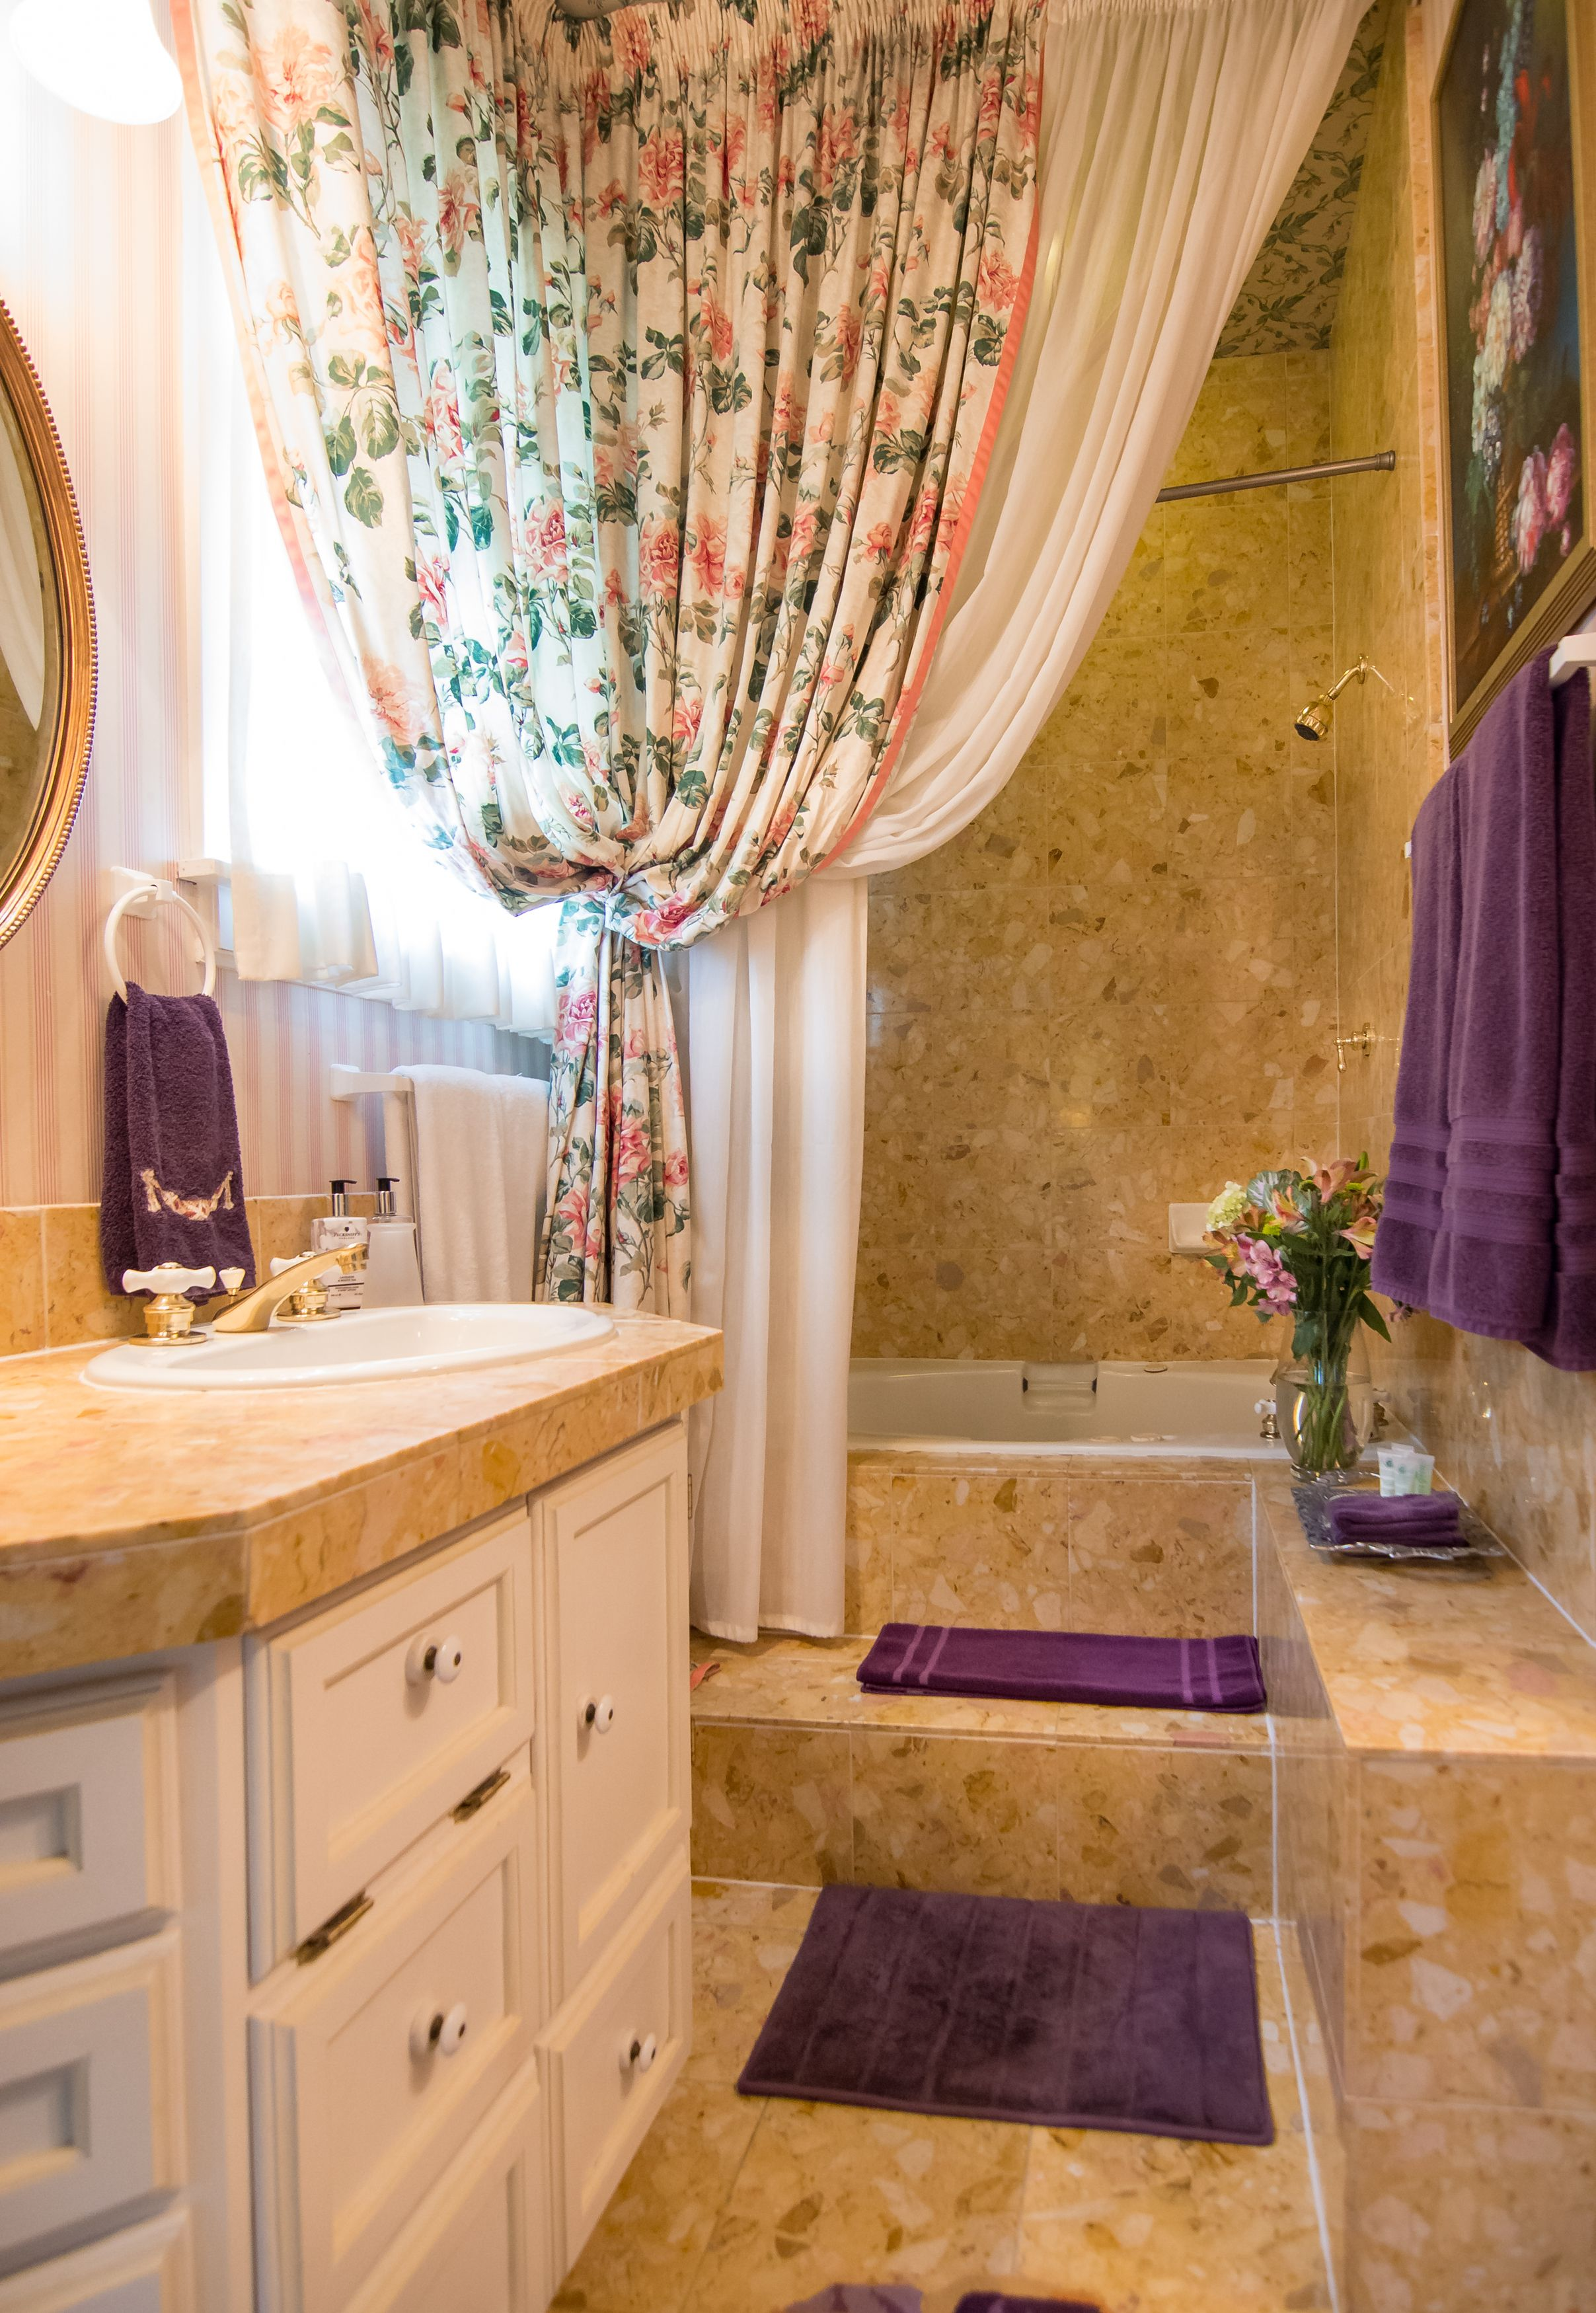 Jacuzzi Tub In Gothic Suite. | Home Decor at the Inn at Pearl Street ...